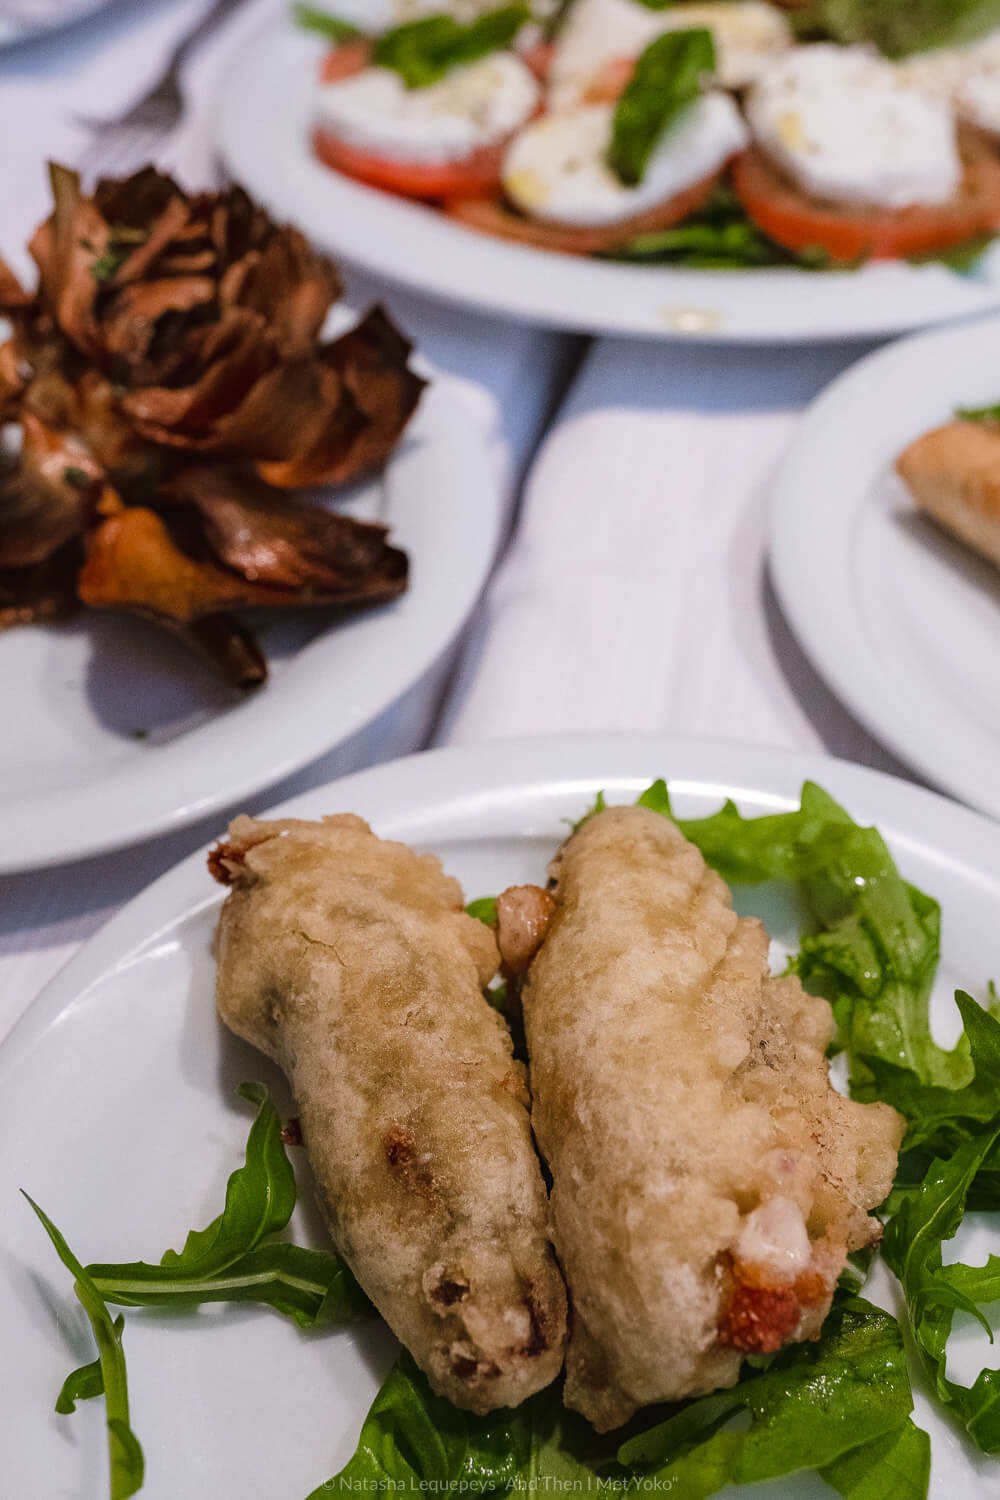 """Fried zucchini blossoms in the Jewish Ghetto, Rome. Travel photography and guide by © Natasha Lequepeys for """"And Then I Met Yoko"""". #rome #jewishghettorome #italy #fujifilm #travelphotography"""